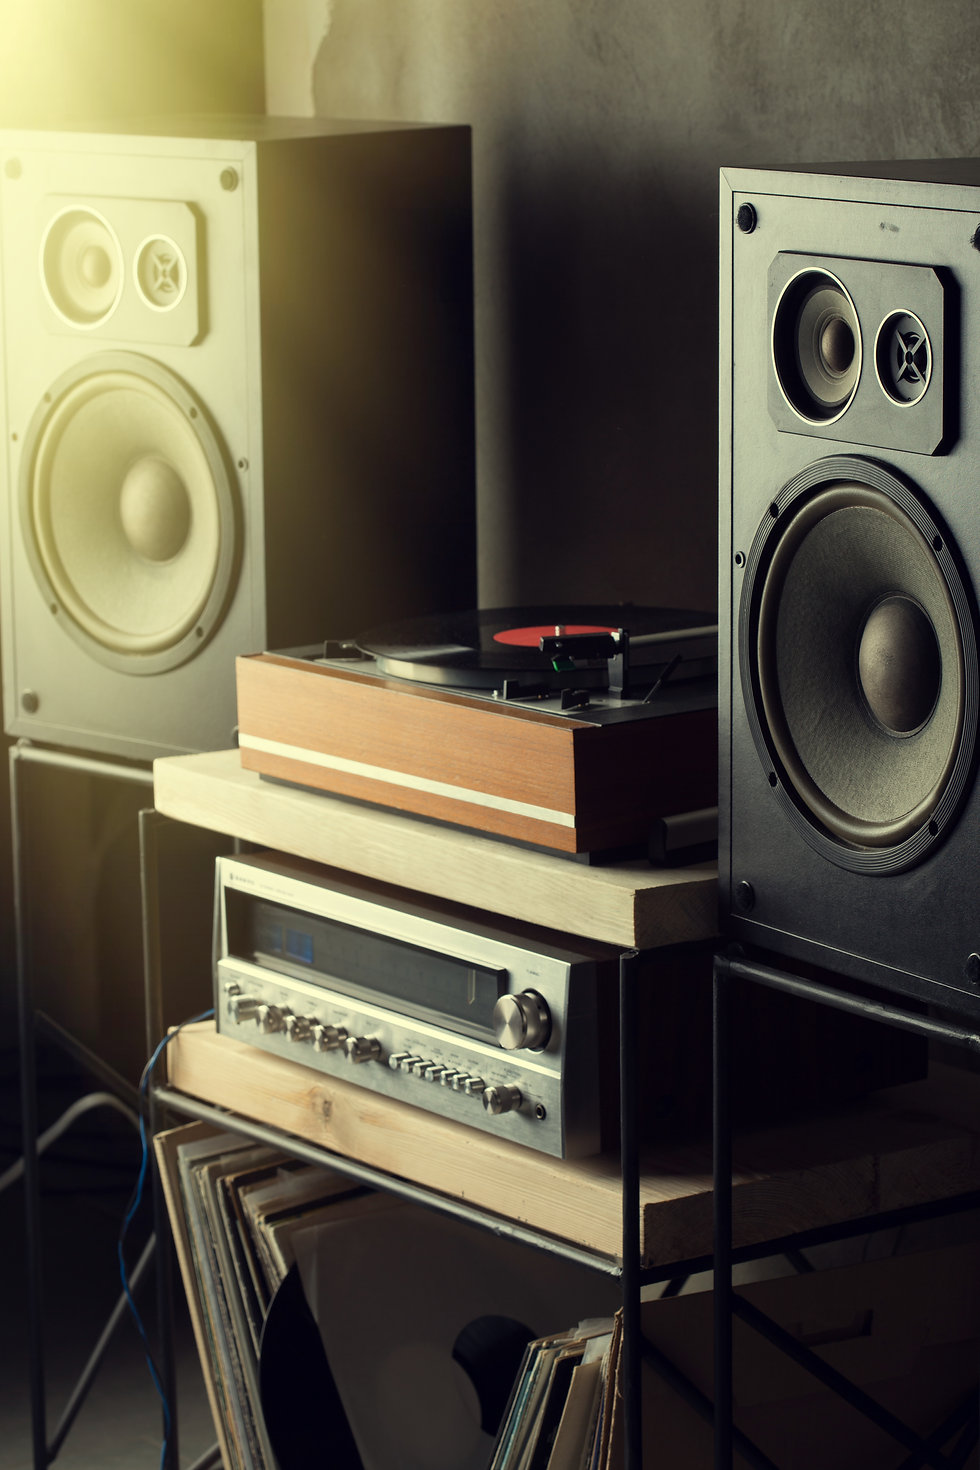 HiFi system with turntable, amplifier an